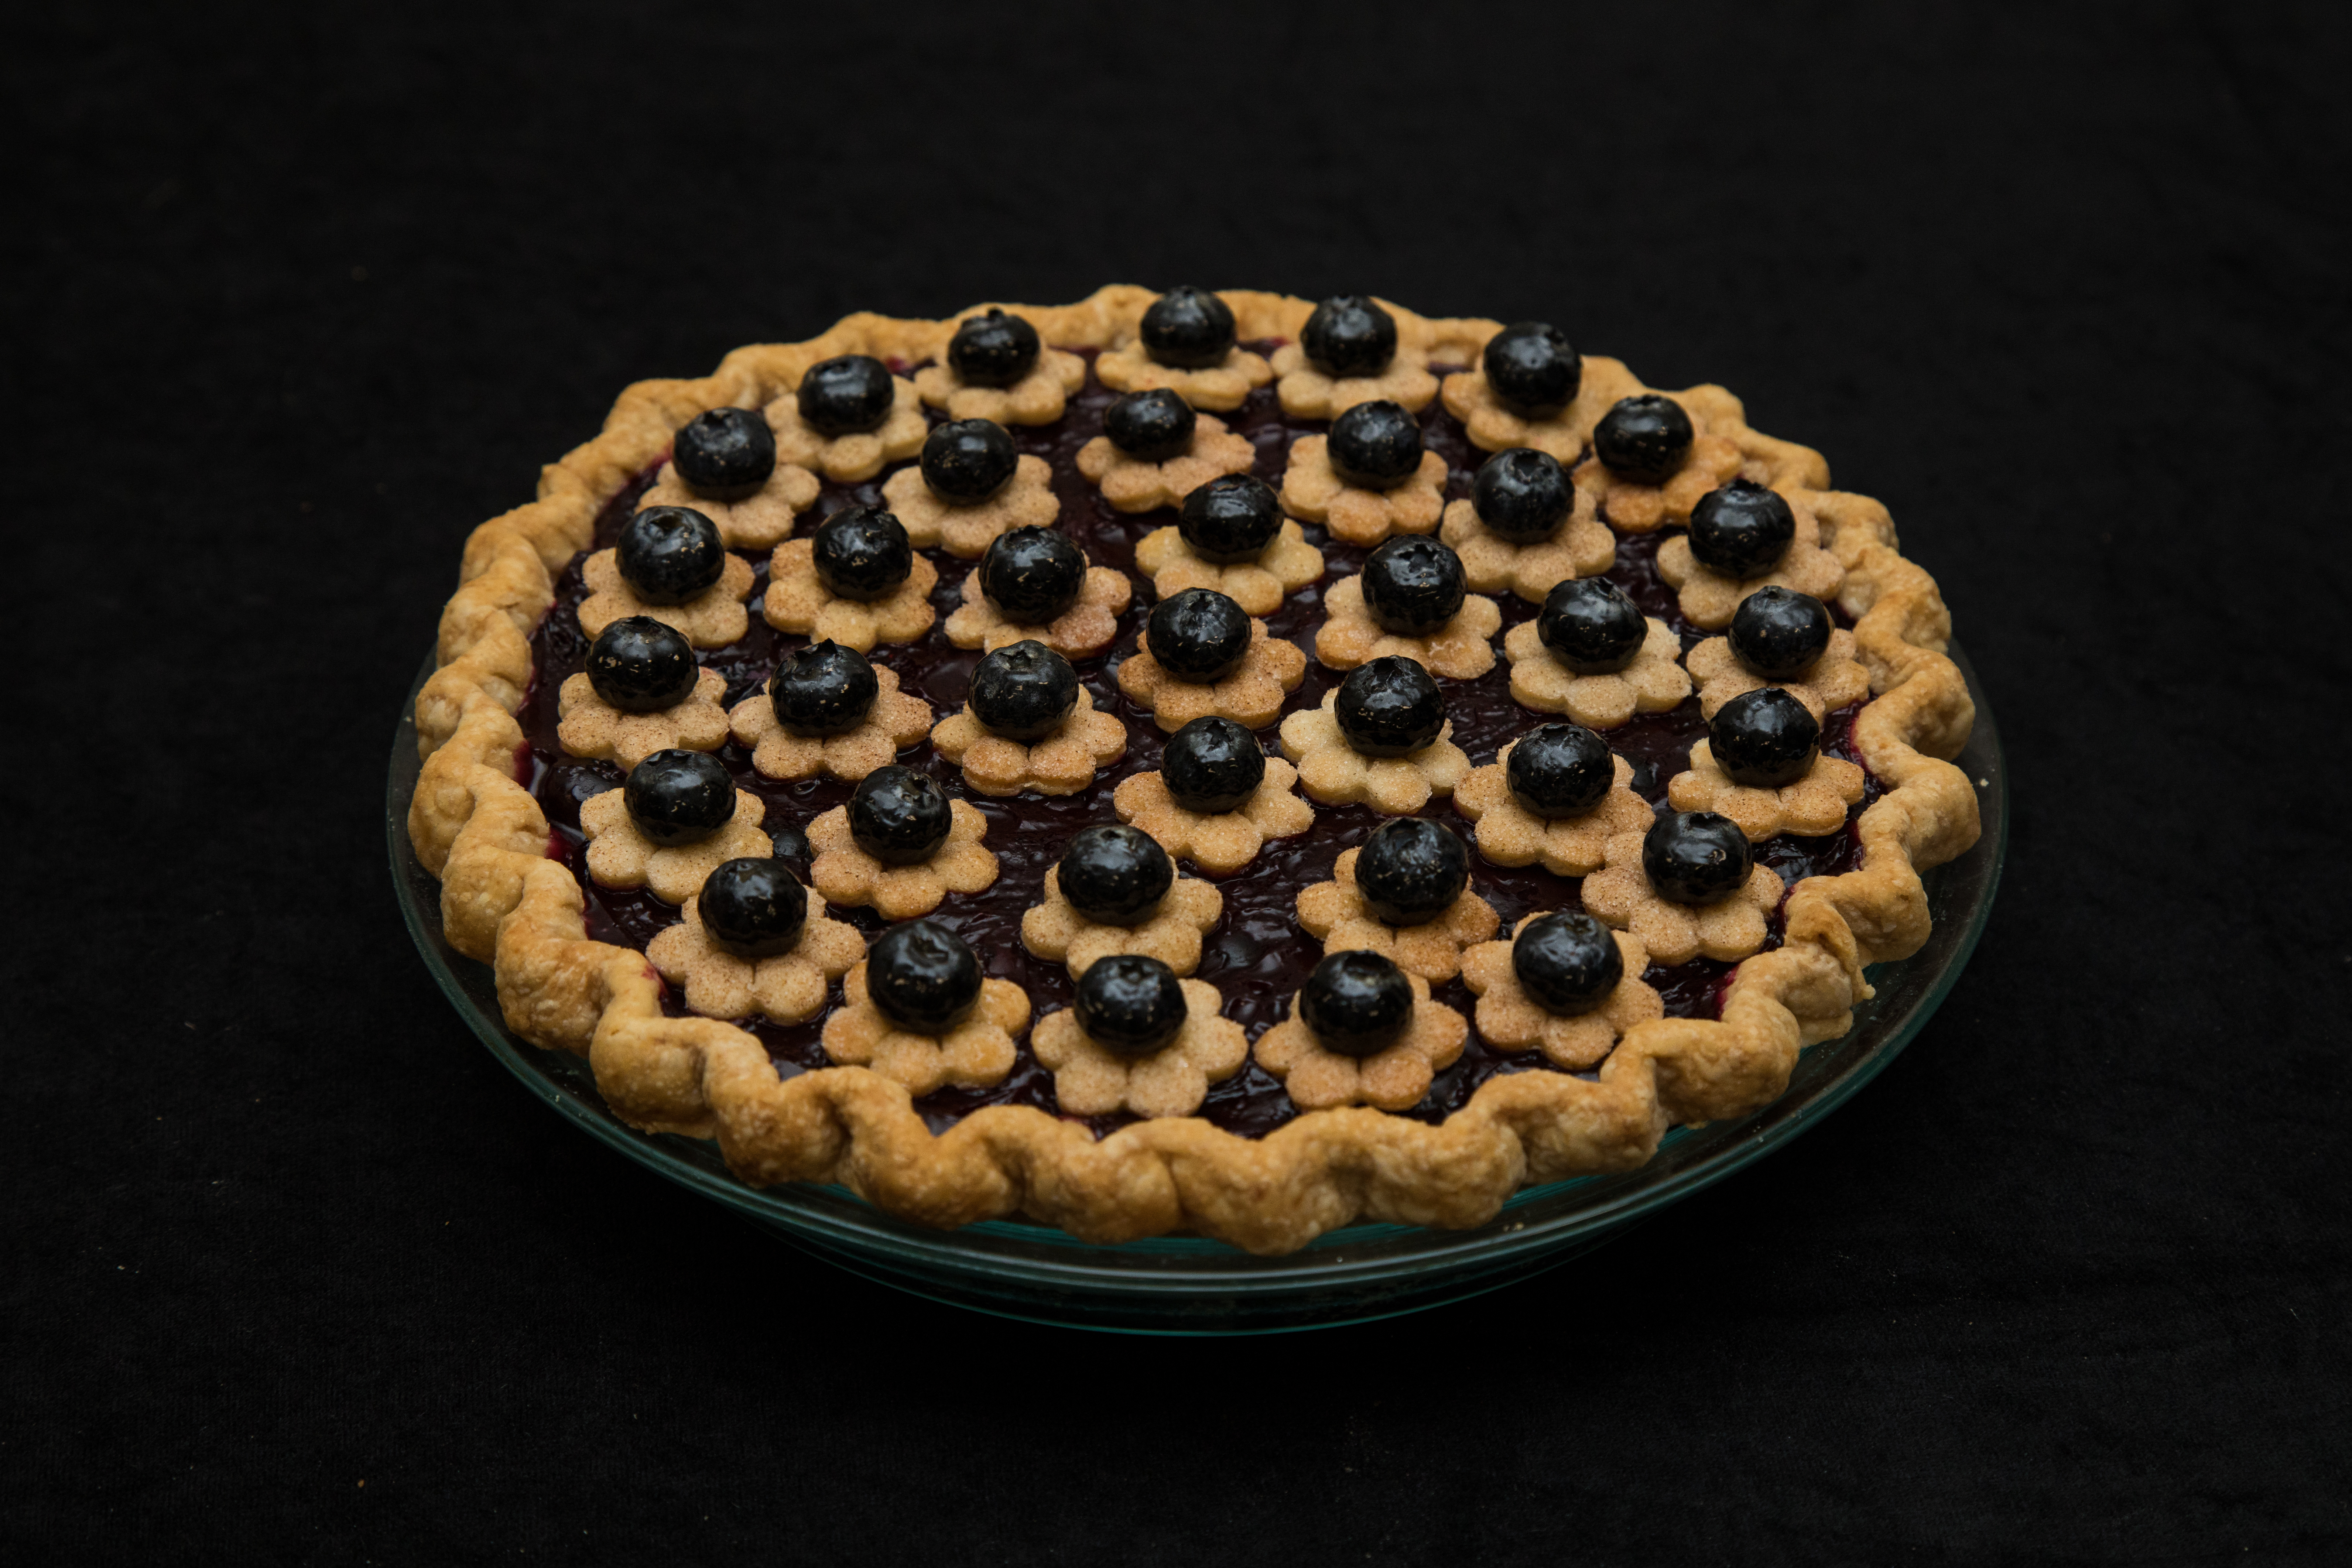 2019 Amateur 1st Place Blueberry I'm So Blueberry Pie, Rhonda Hull, Little Rock, AR